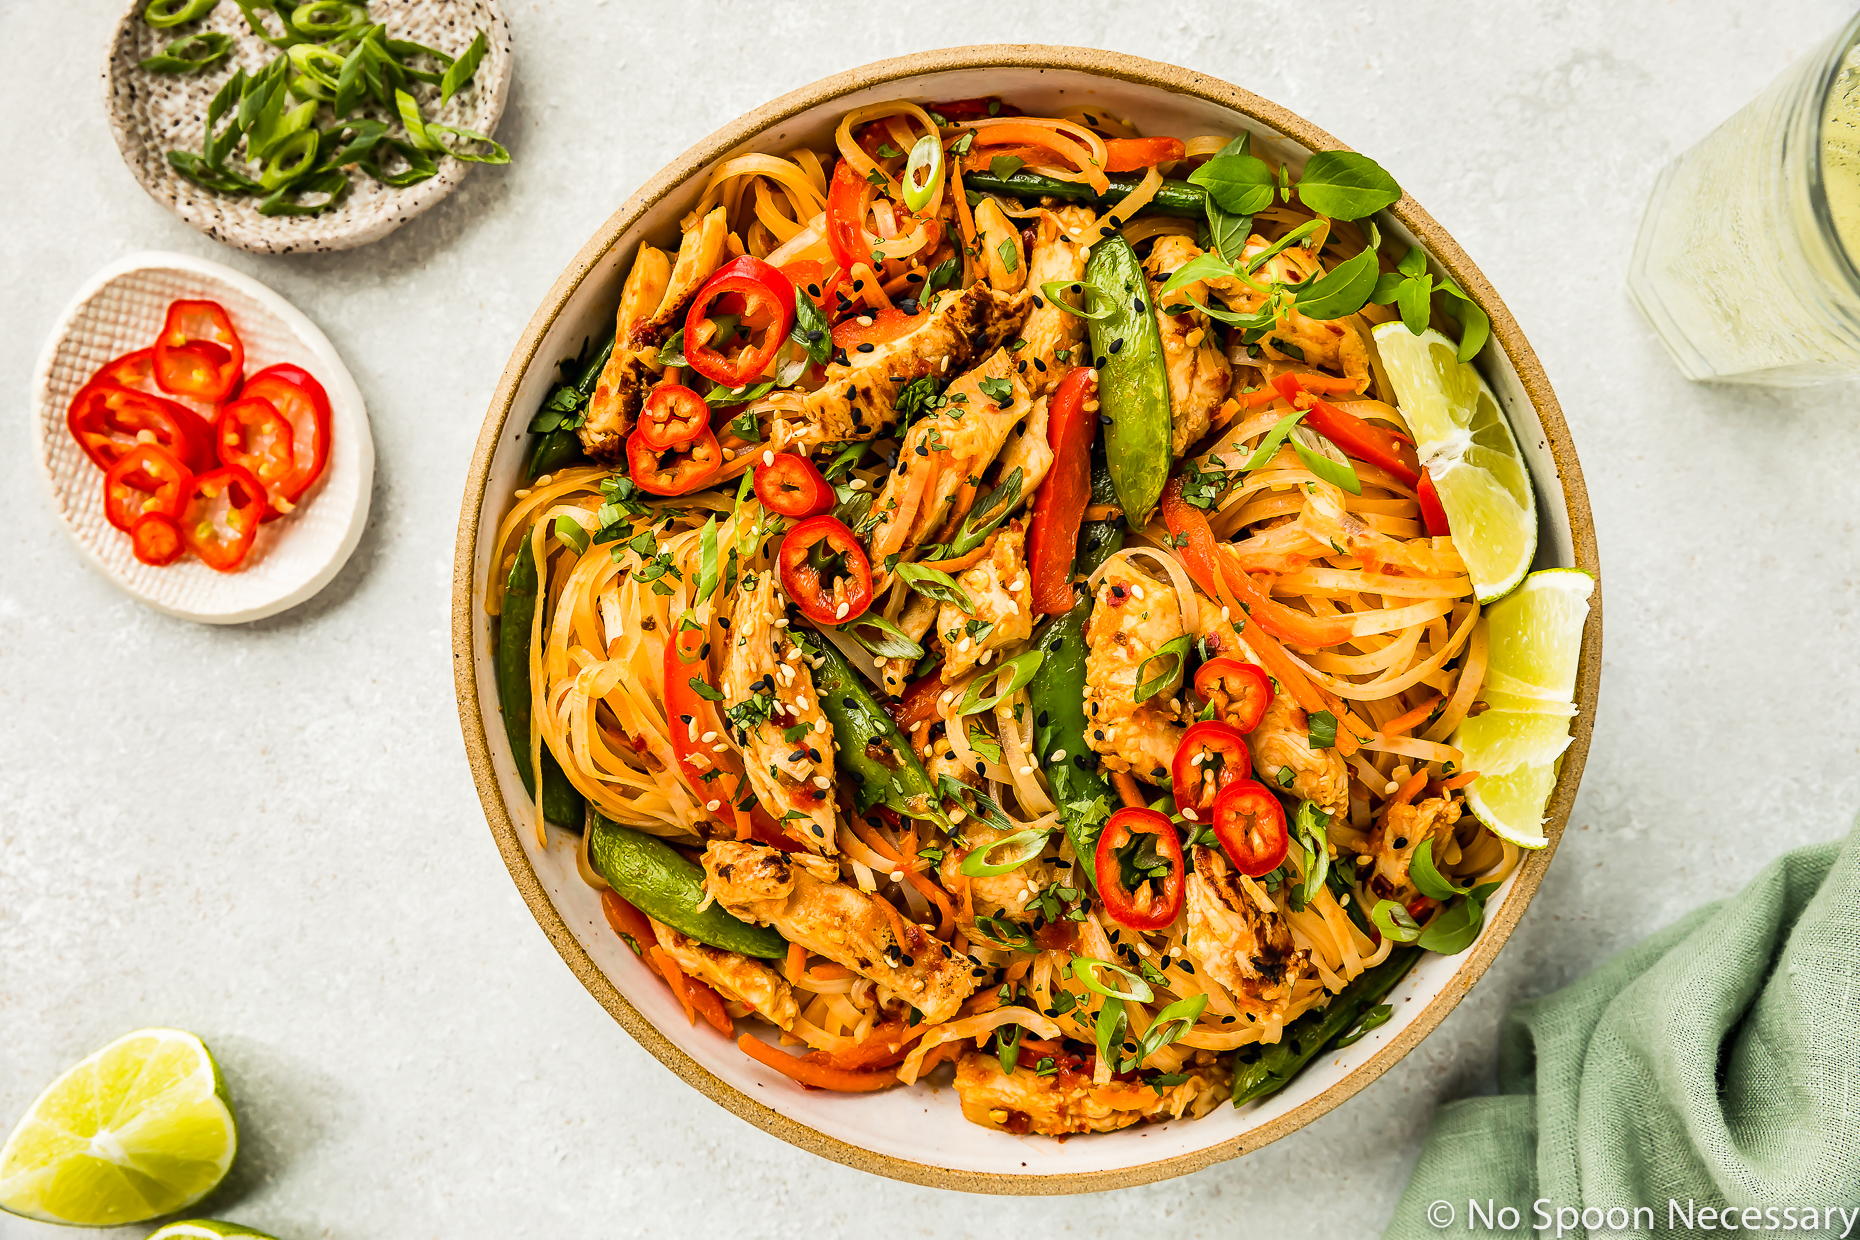 Thai Spicy Chili Chicken and Noodles